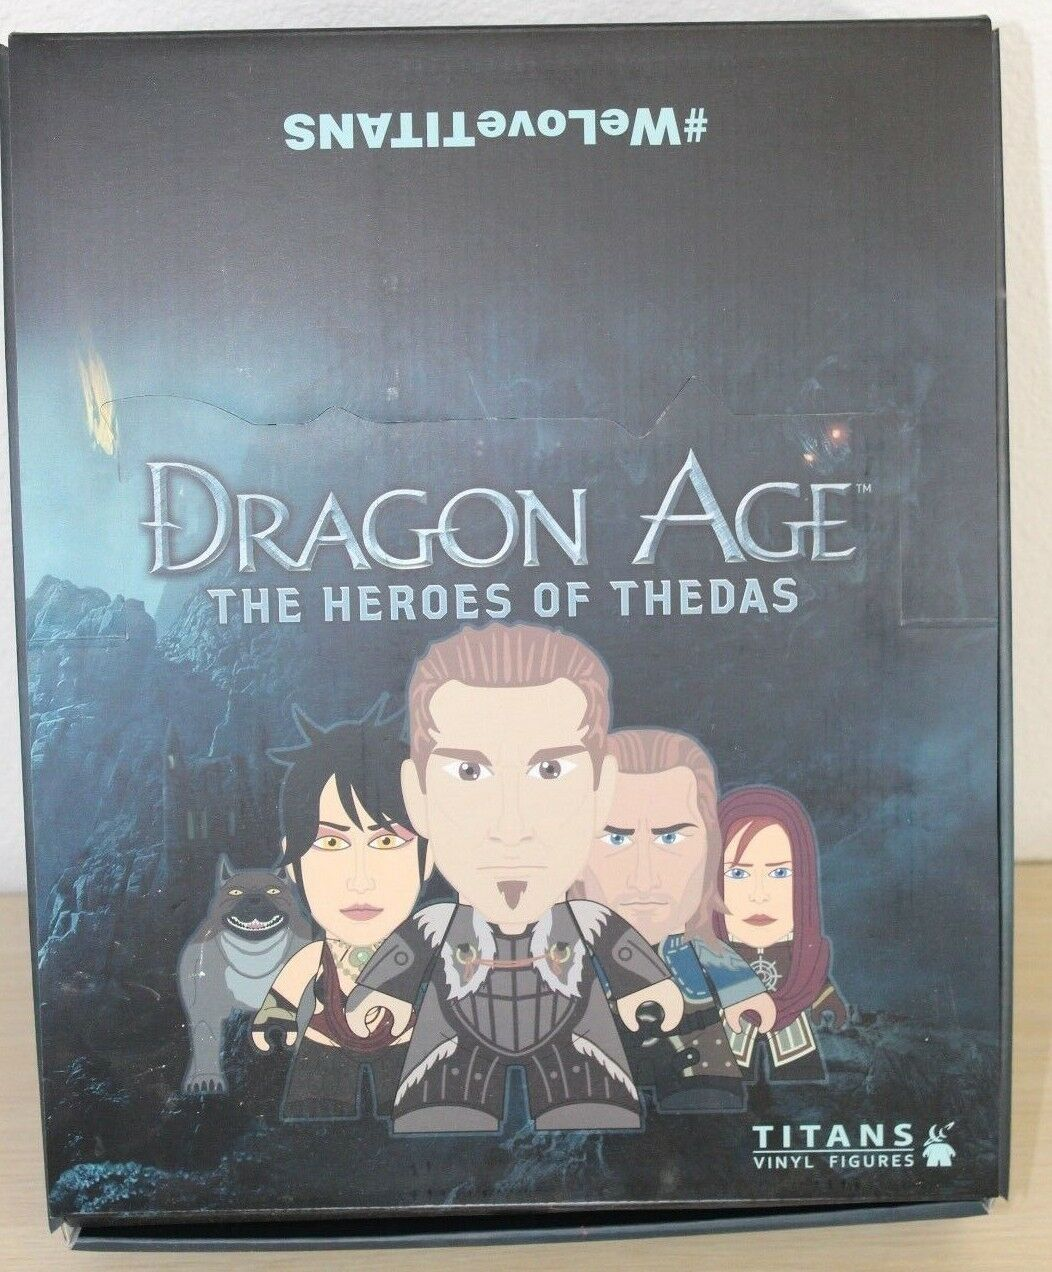 Dragon Age Heroes of Thedas Titans Titan Vinyl Display Blind Box Case of 20